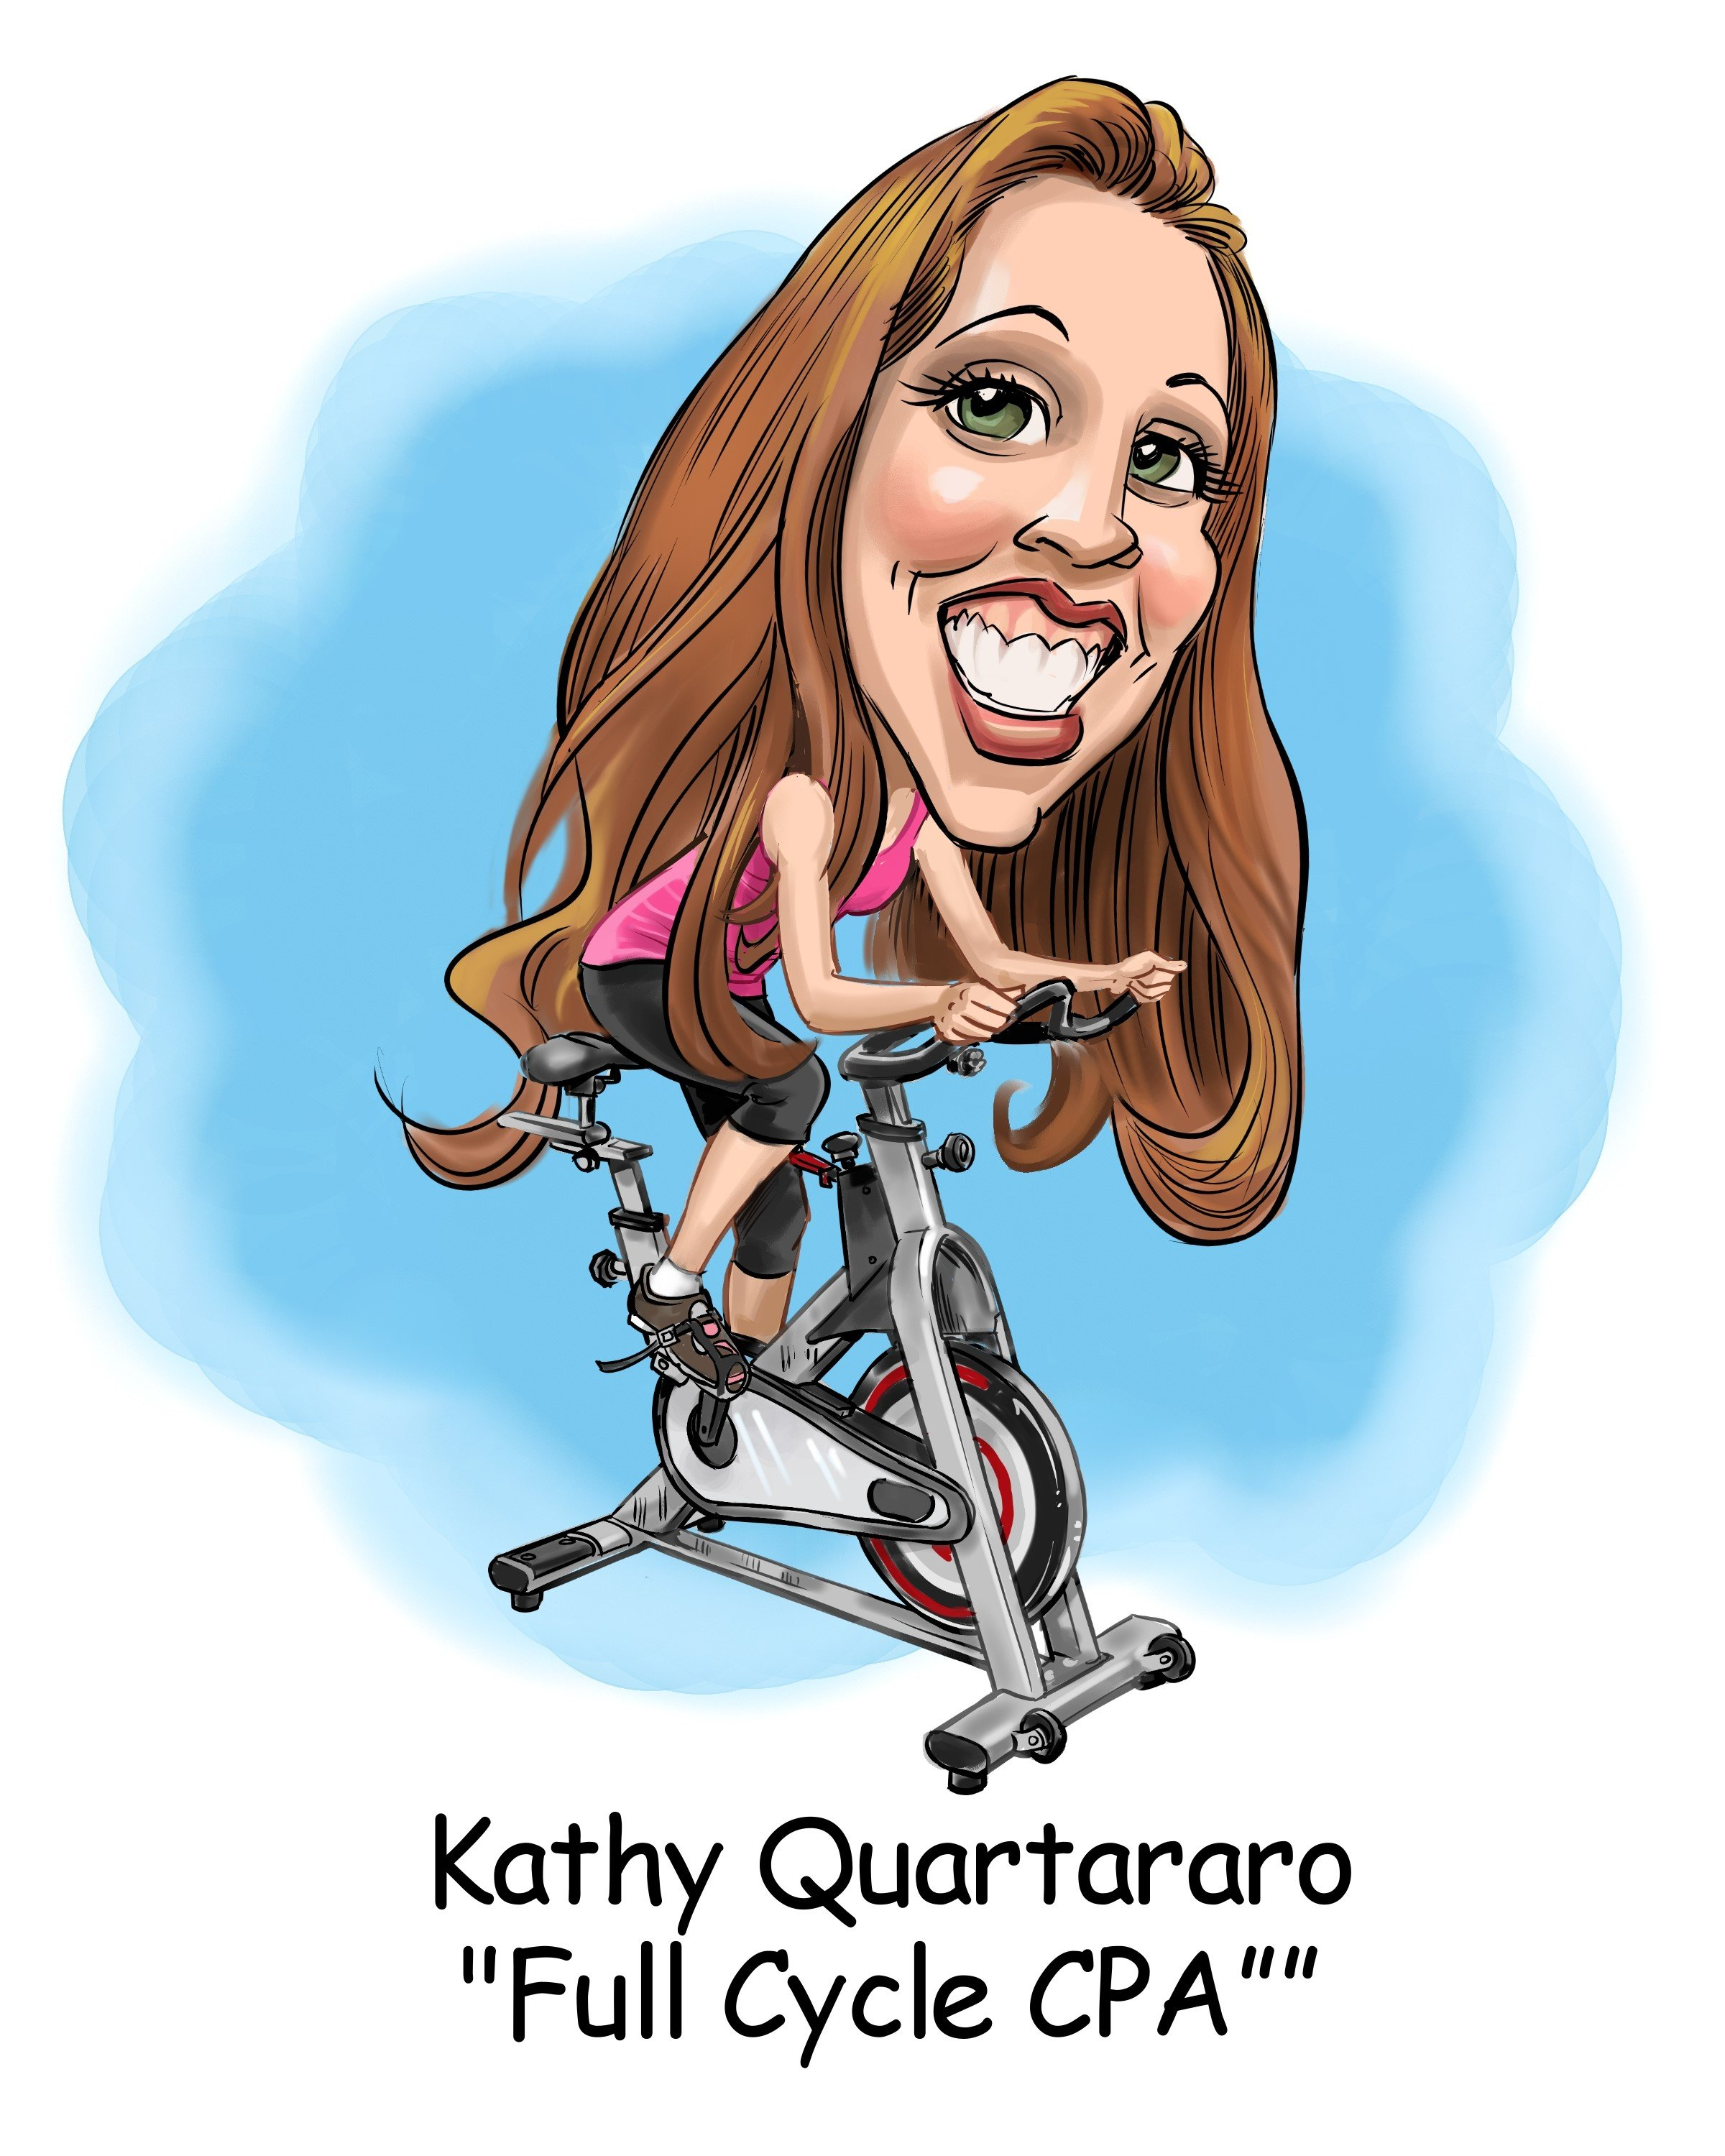 May 2020 Summit CPA Employee Spotlight: Kathy Quartararo